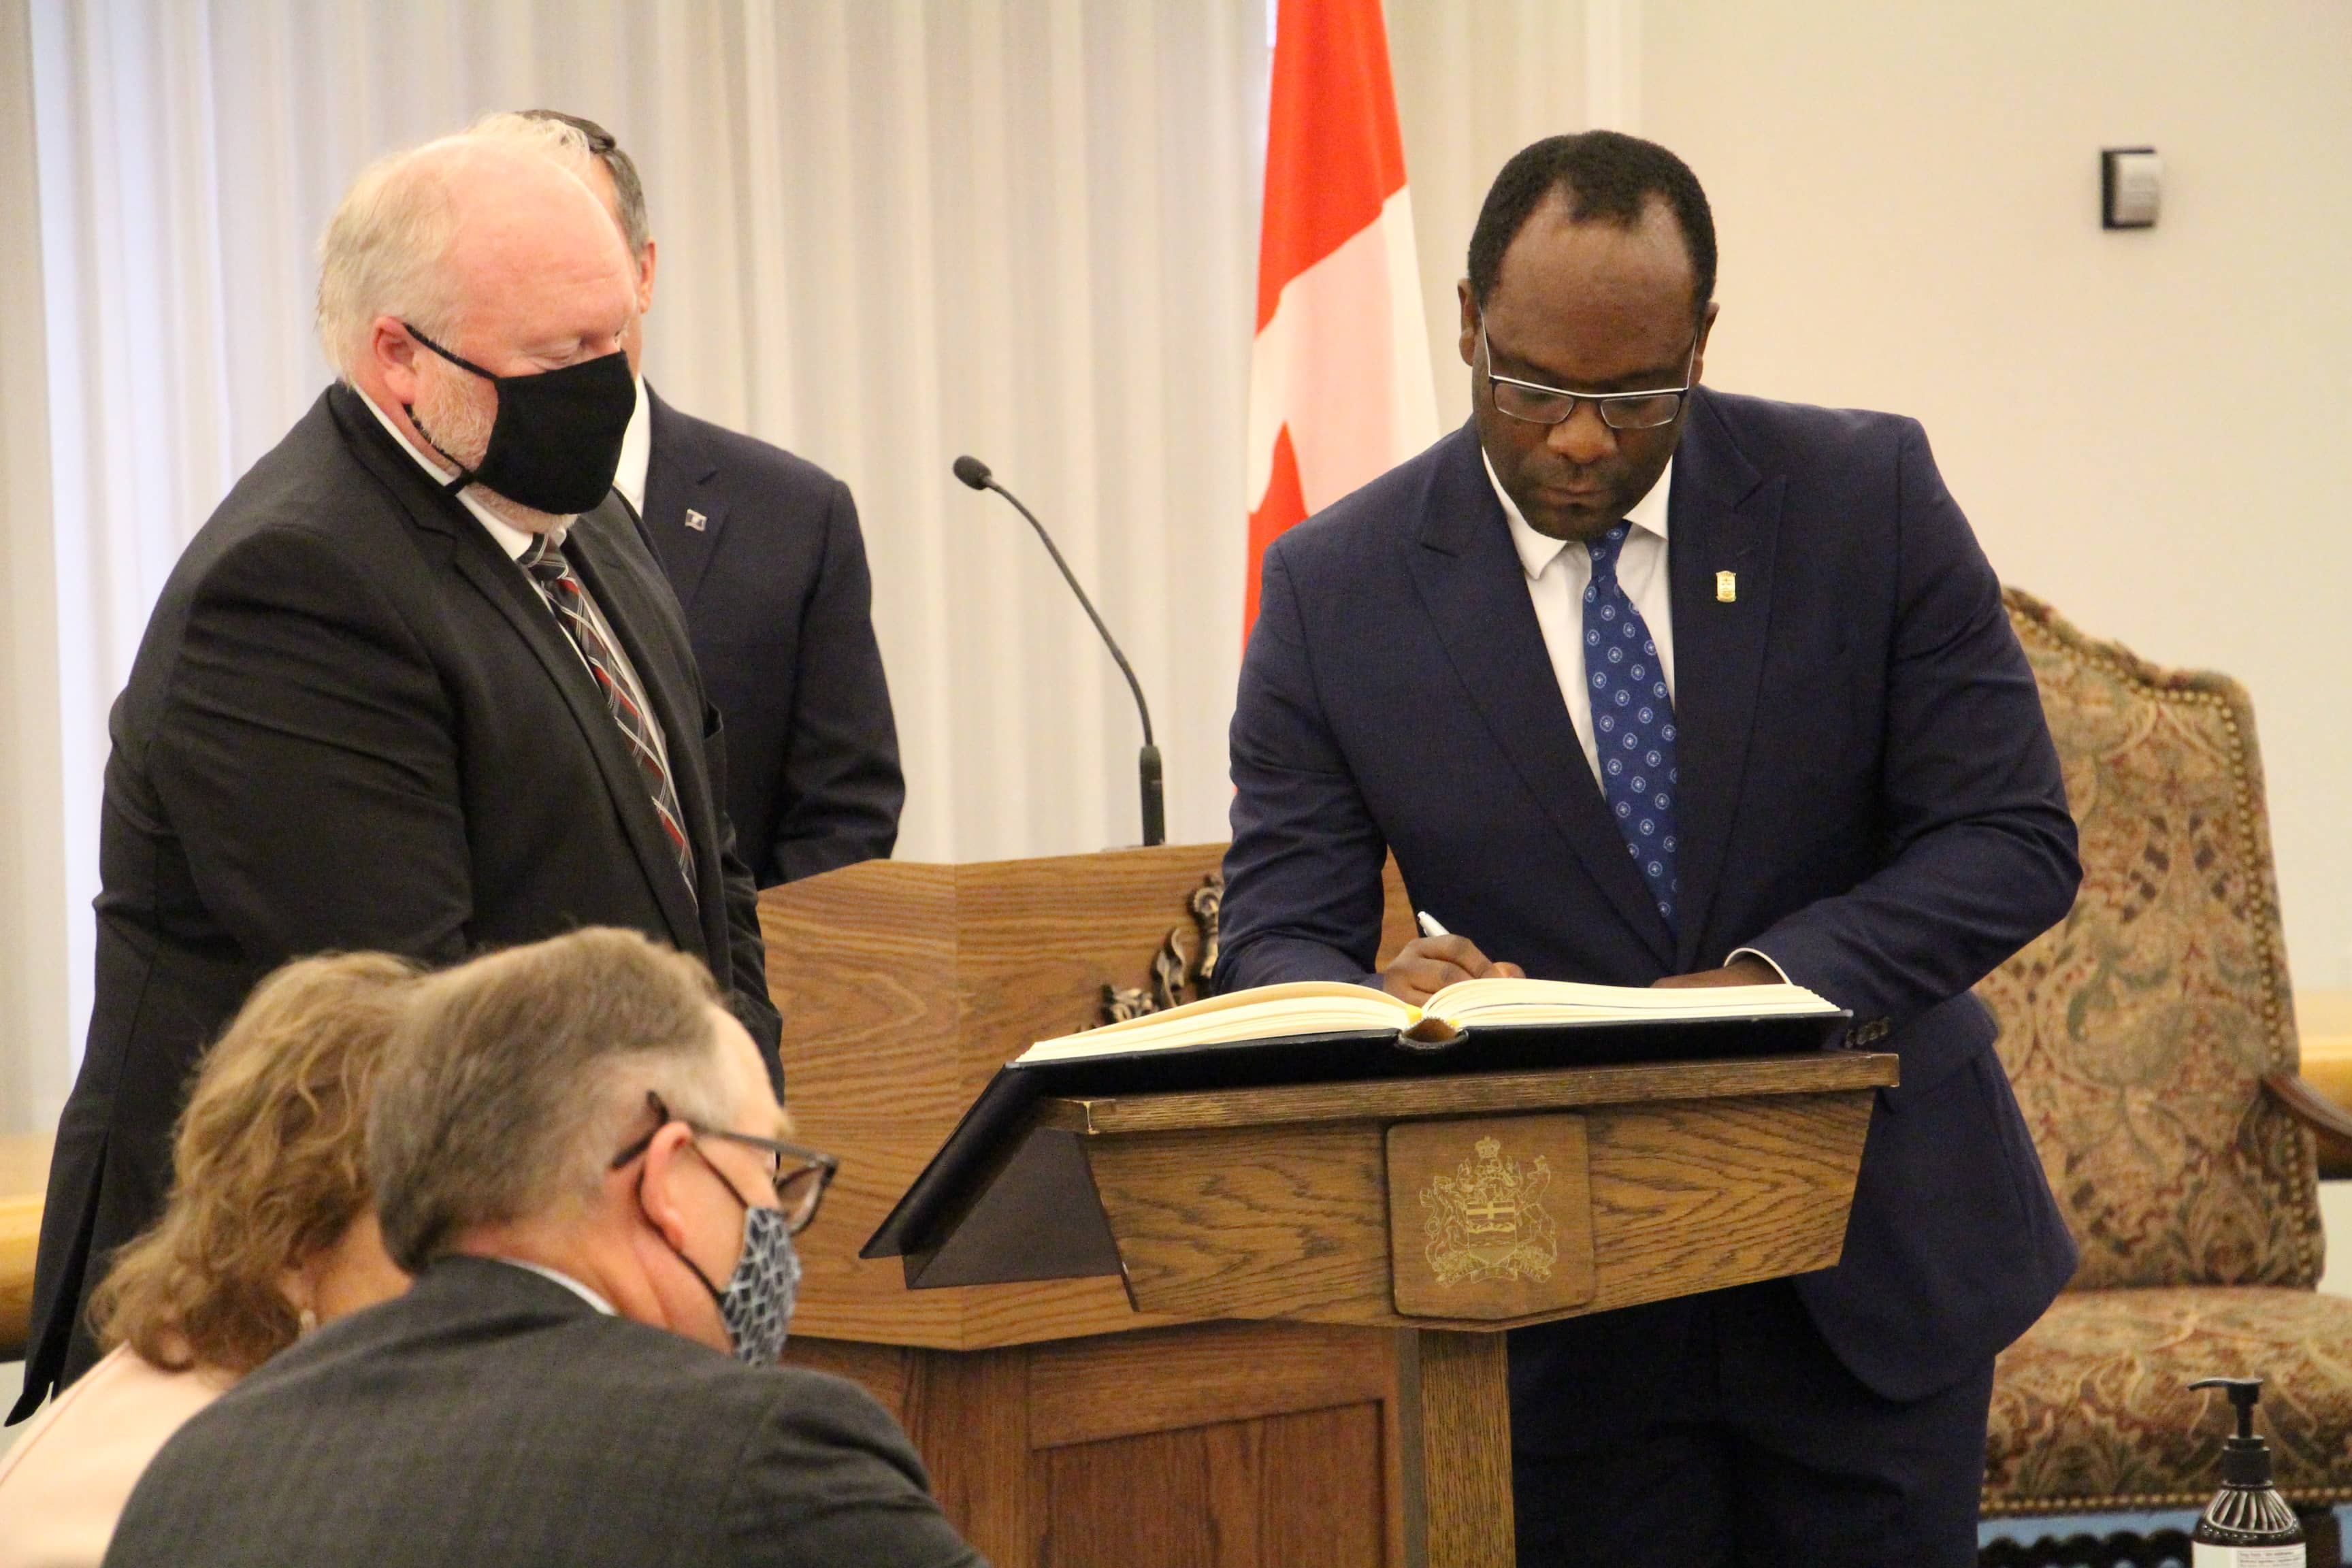 Justice Minister Kaycee Madu Is On The Hot Seat River Country